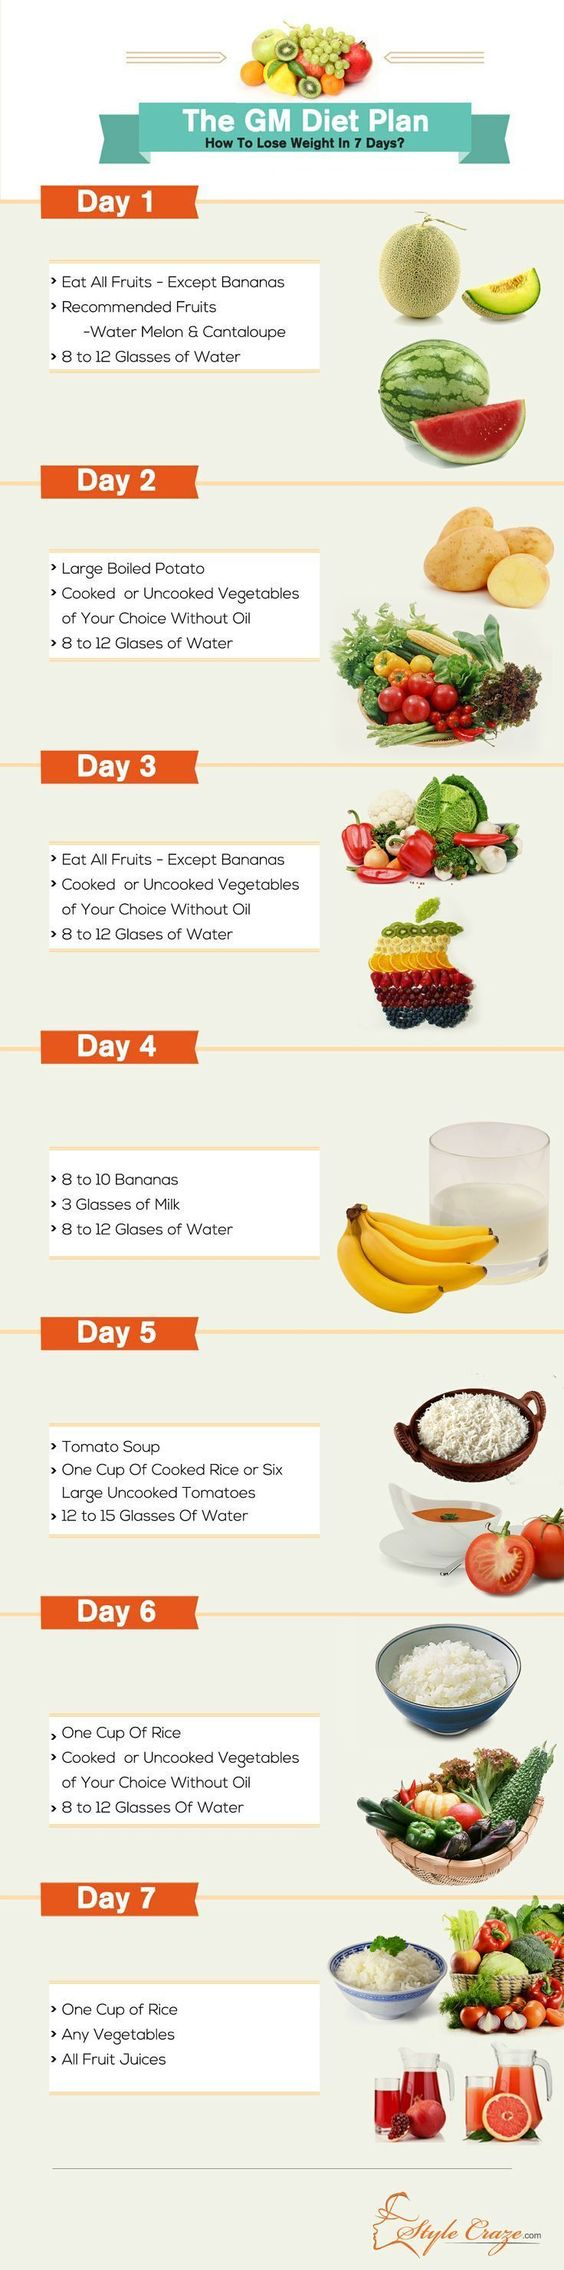 diet chart for weight loss obesity